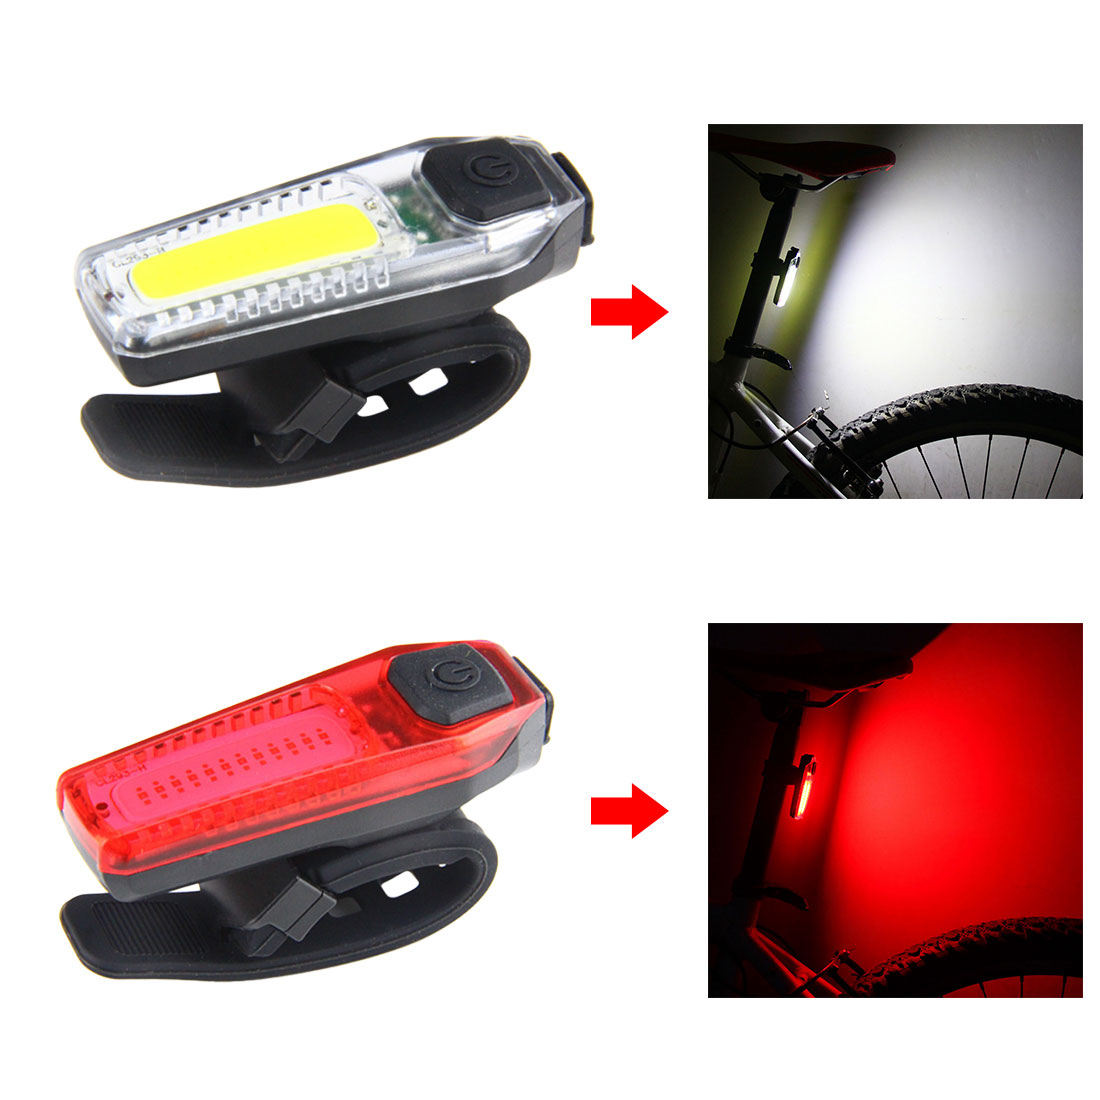 New 120lm Bike Bicycle Tail Light Waterproof Cycling Tail Lamp Riding Rear Light Outdoor LED Light USB Backpack Clip-on Lighting